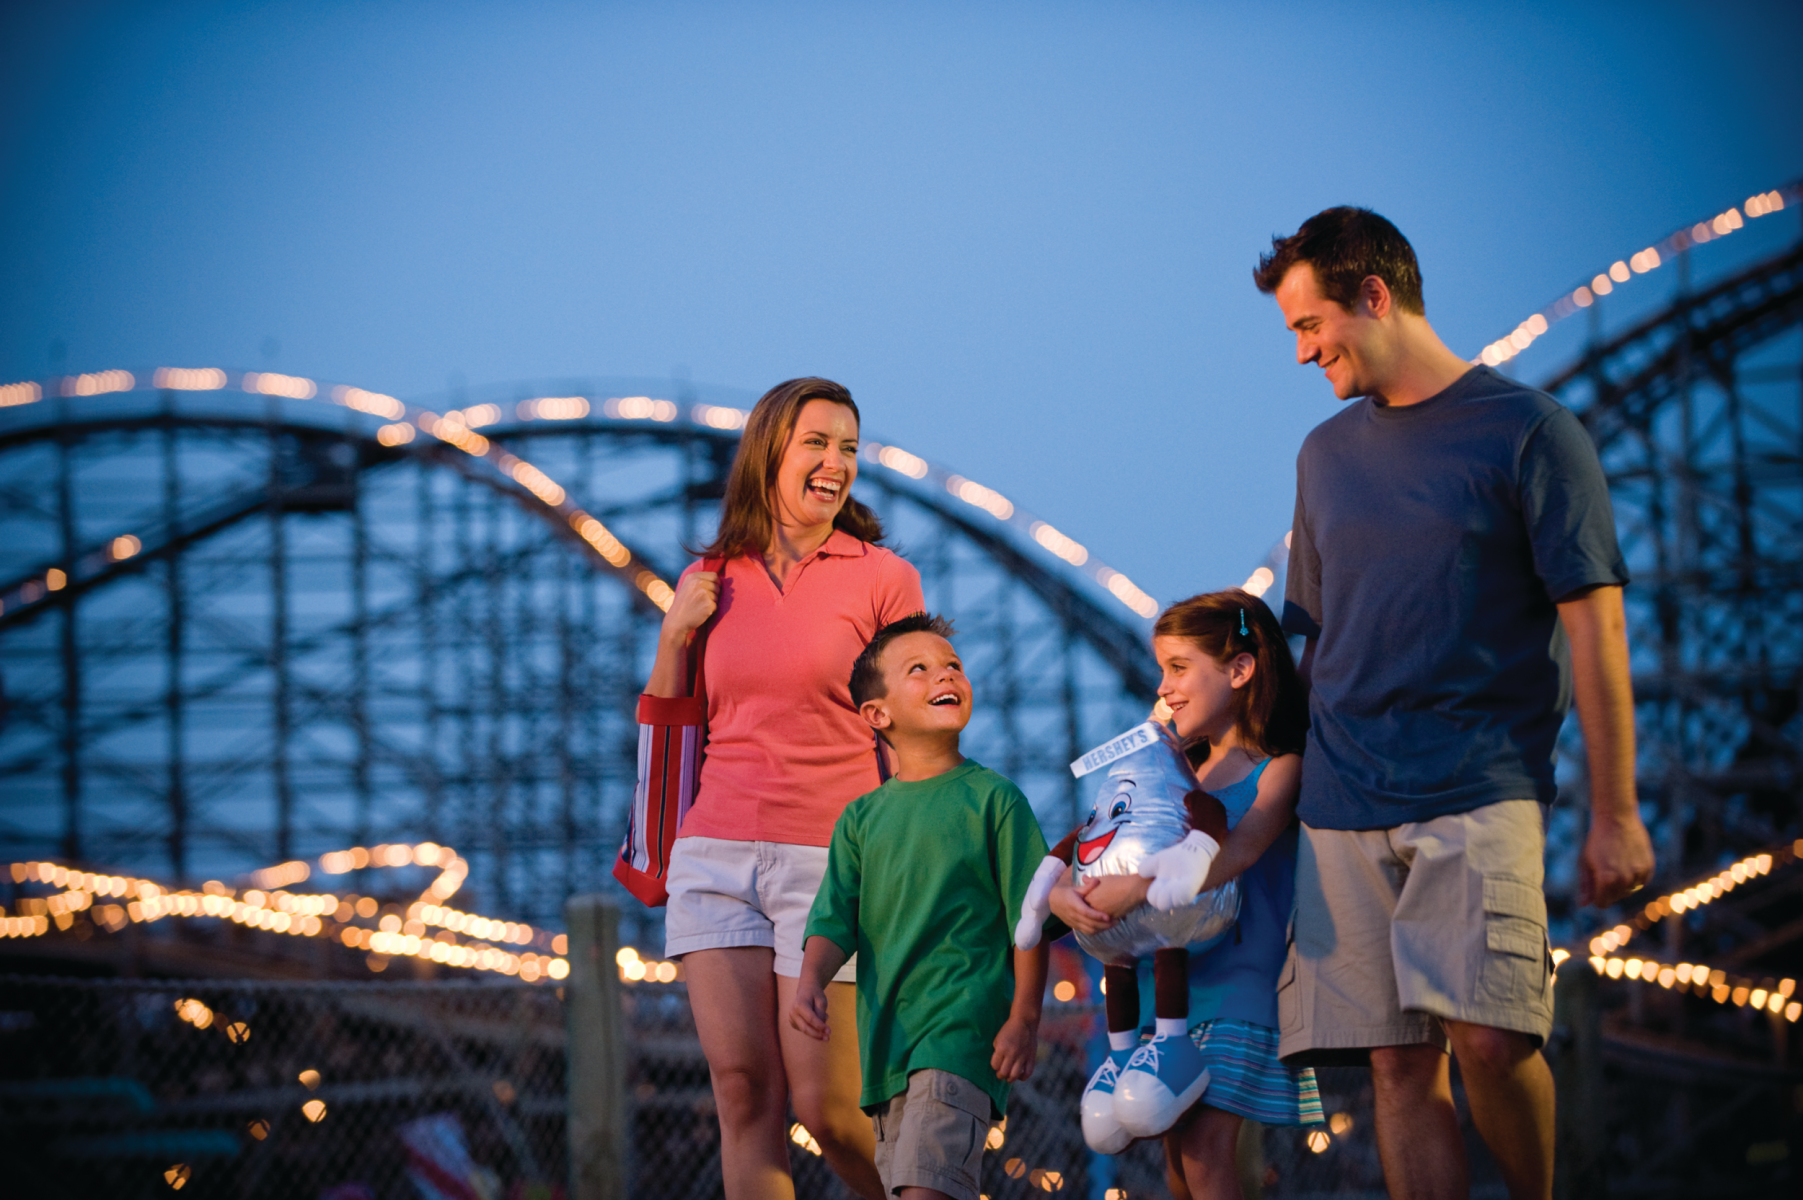 Season Pass Holders have the sweetest time at Hersheypark!